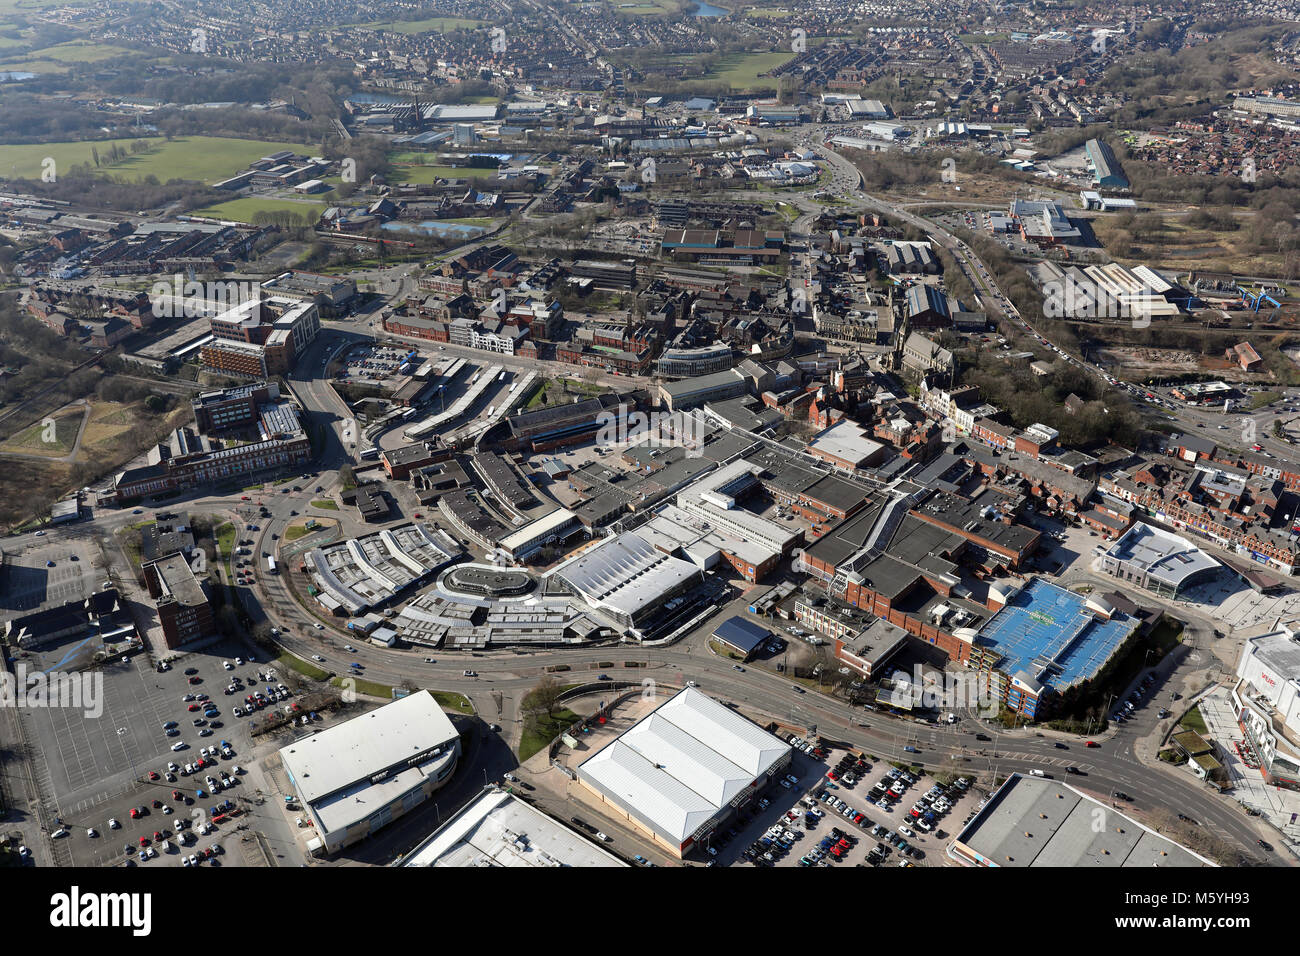 aerial view of Bury town centre, Greater Manchester, UK - Stock Image